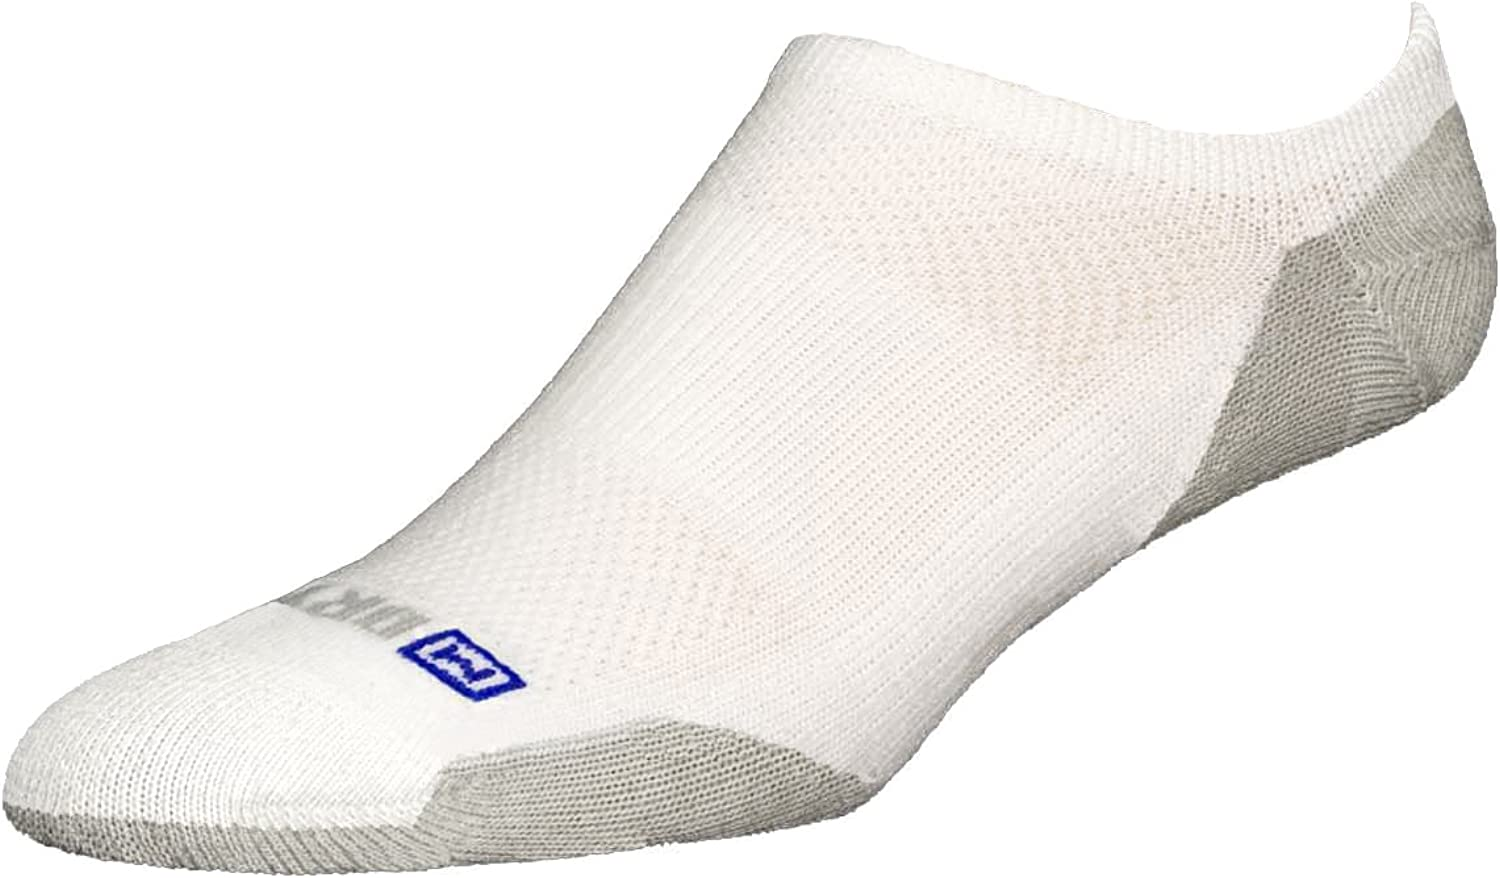 Drymax Men's/Women's Sport Lite Mesh No Show Socks